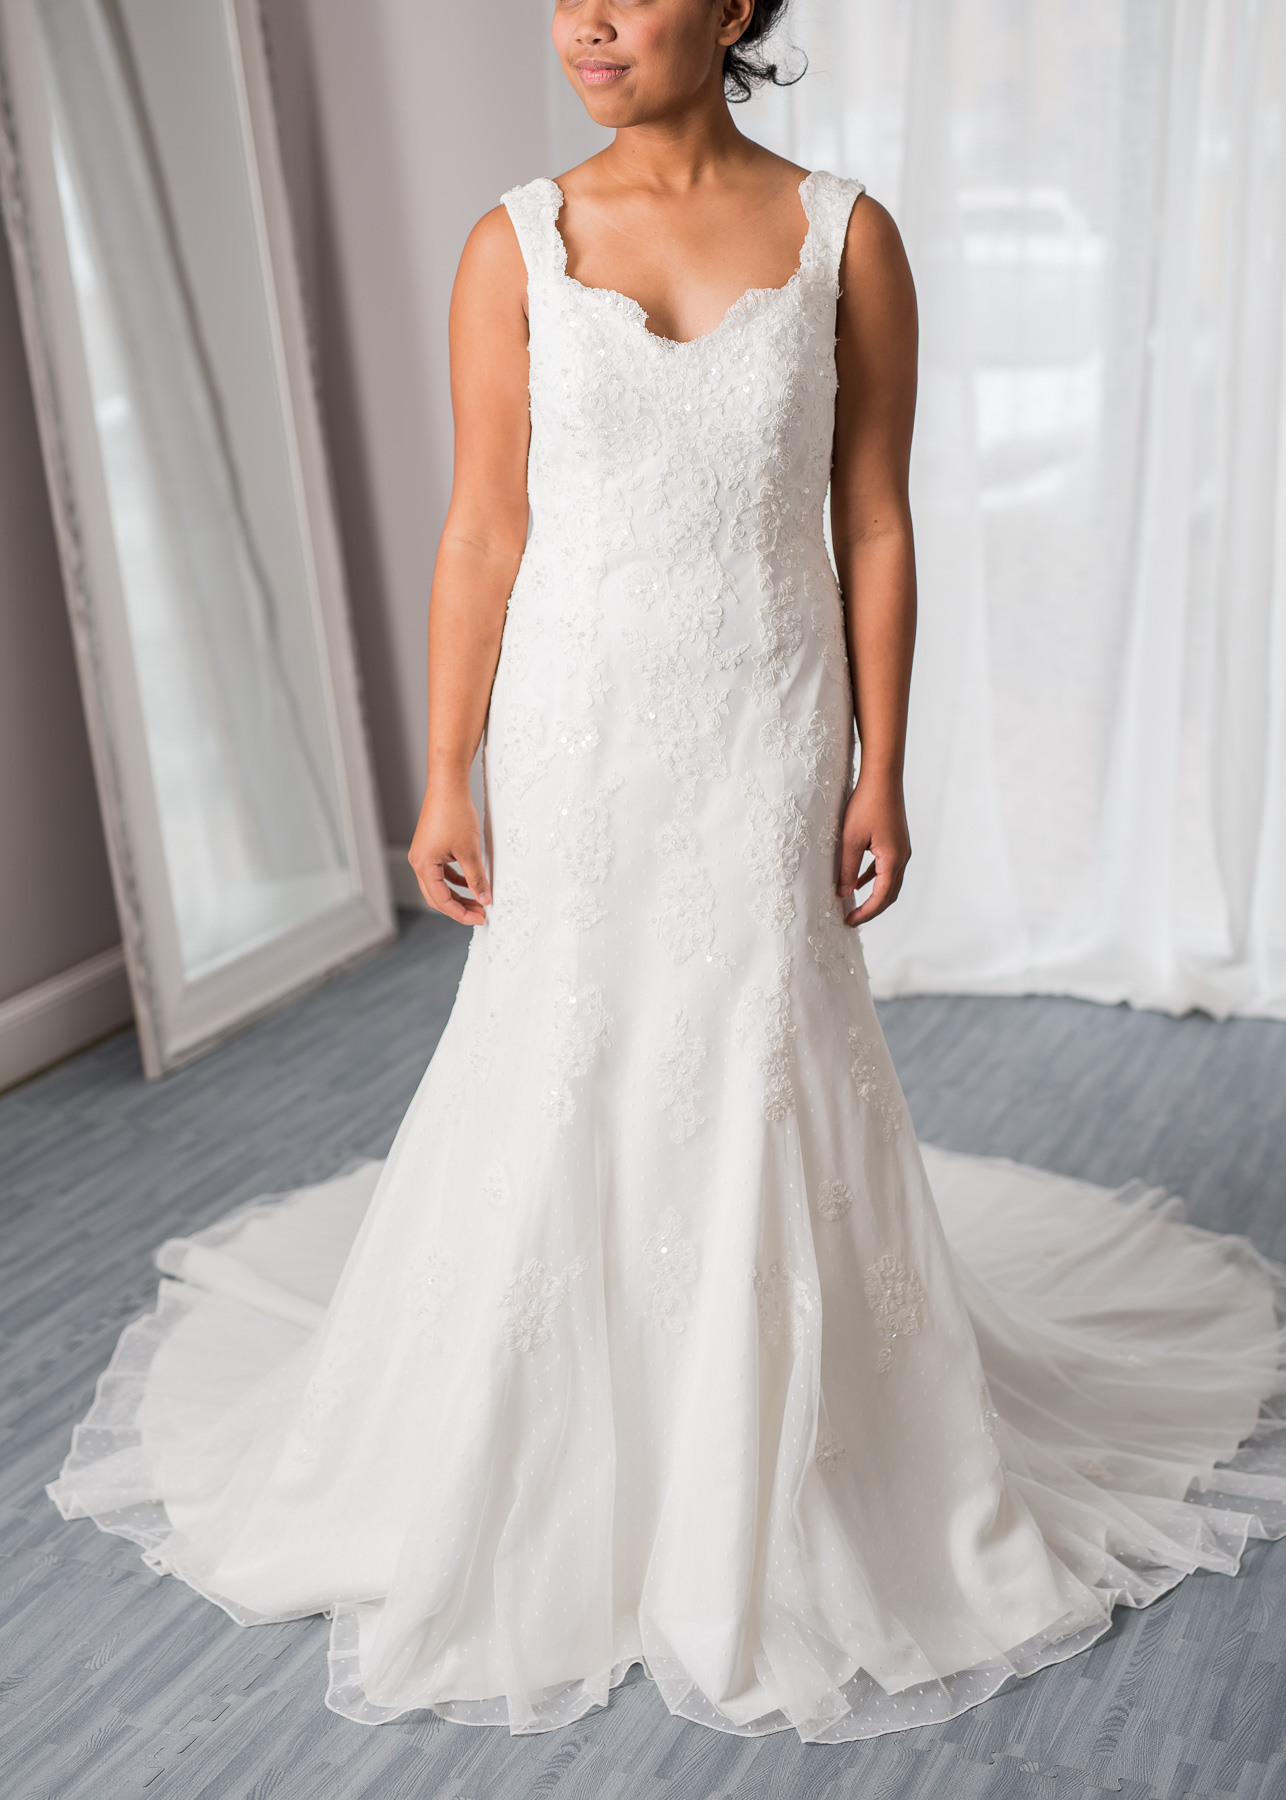 David bridal size 8 - $665 - (26% OFF)